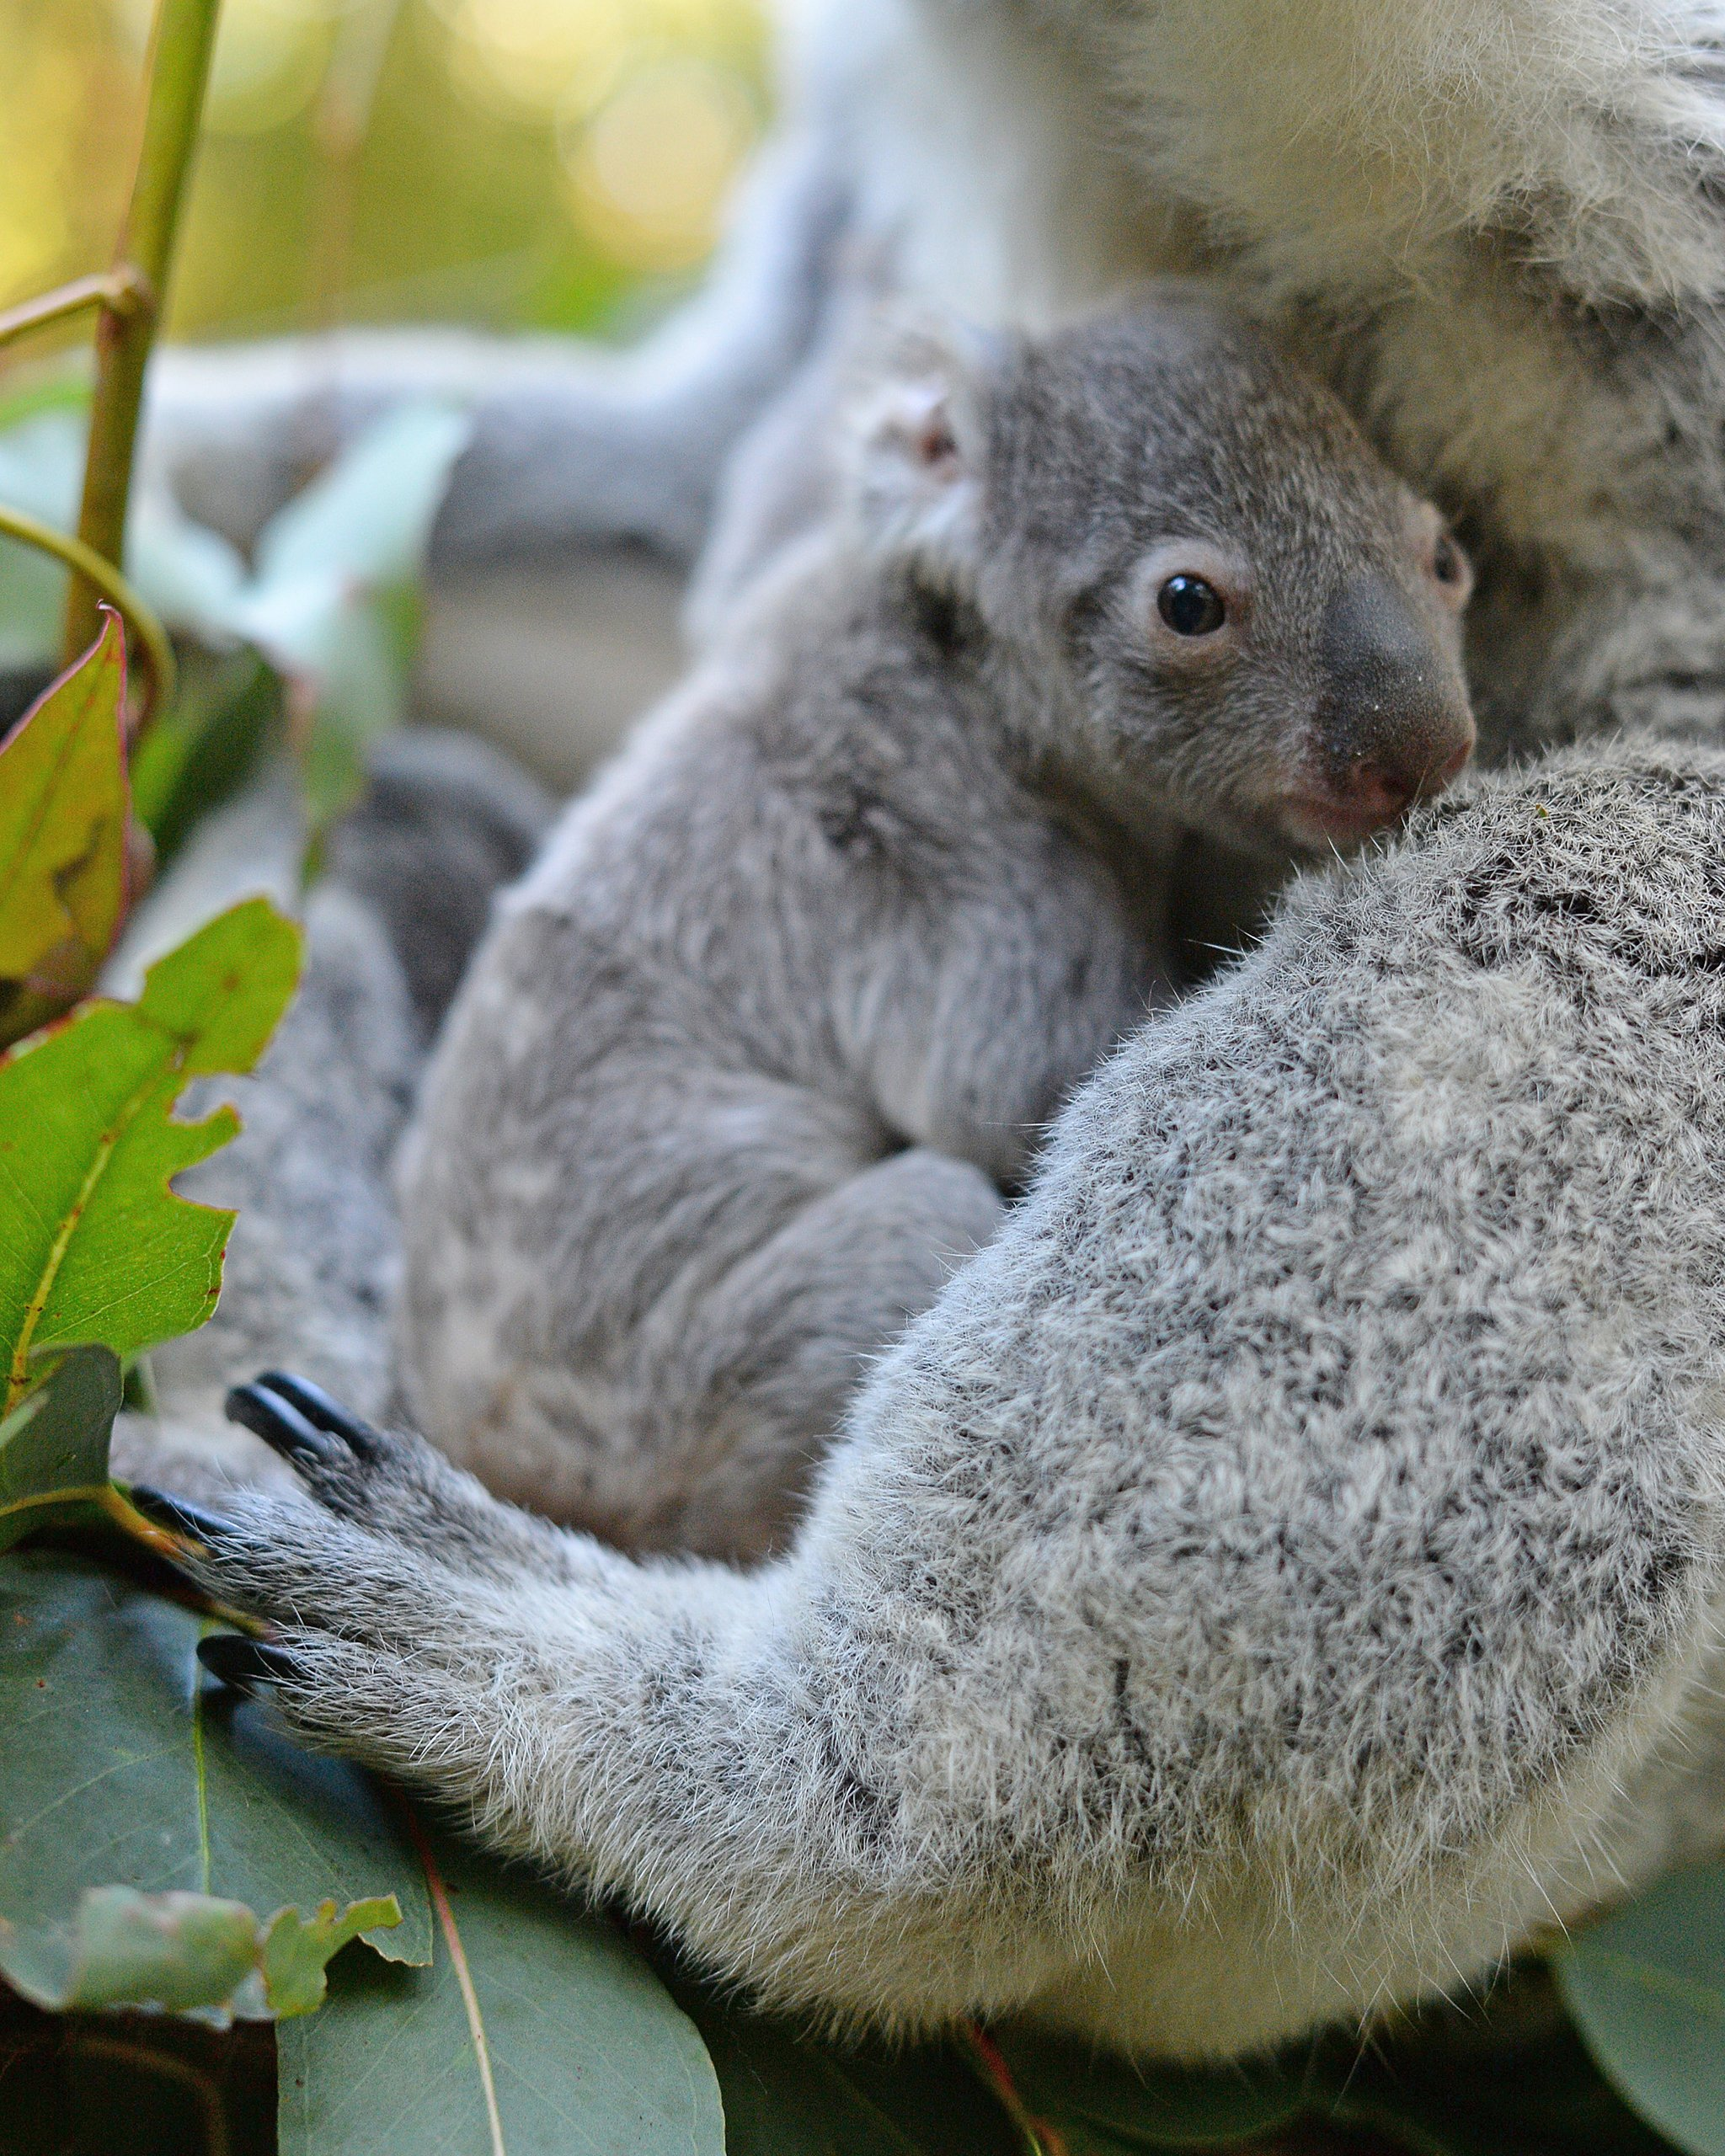 Patient Of The Week At Australia Zoo: Australia Zoo Introduces Its First Baby Koala For The